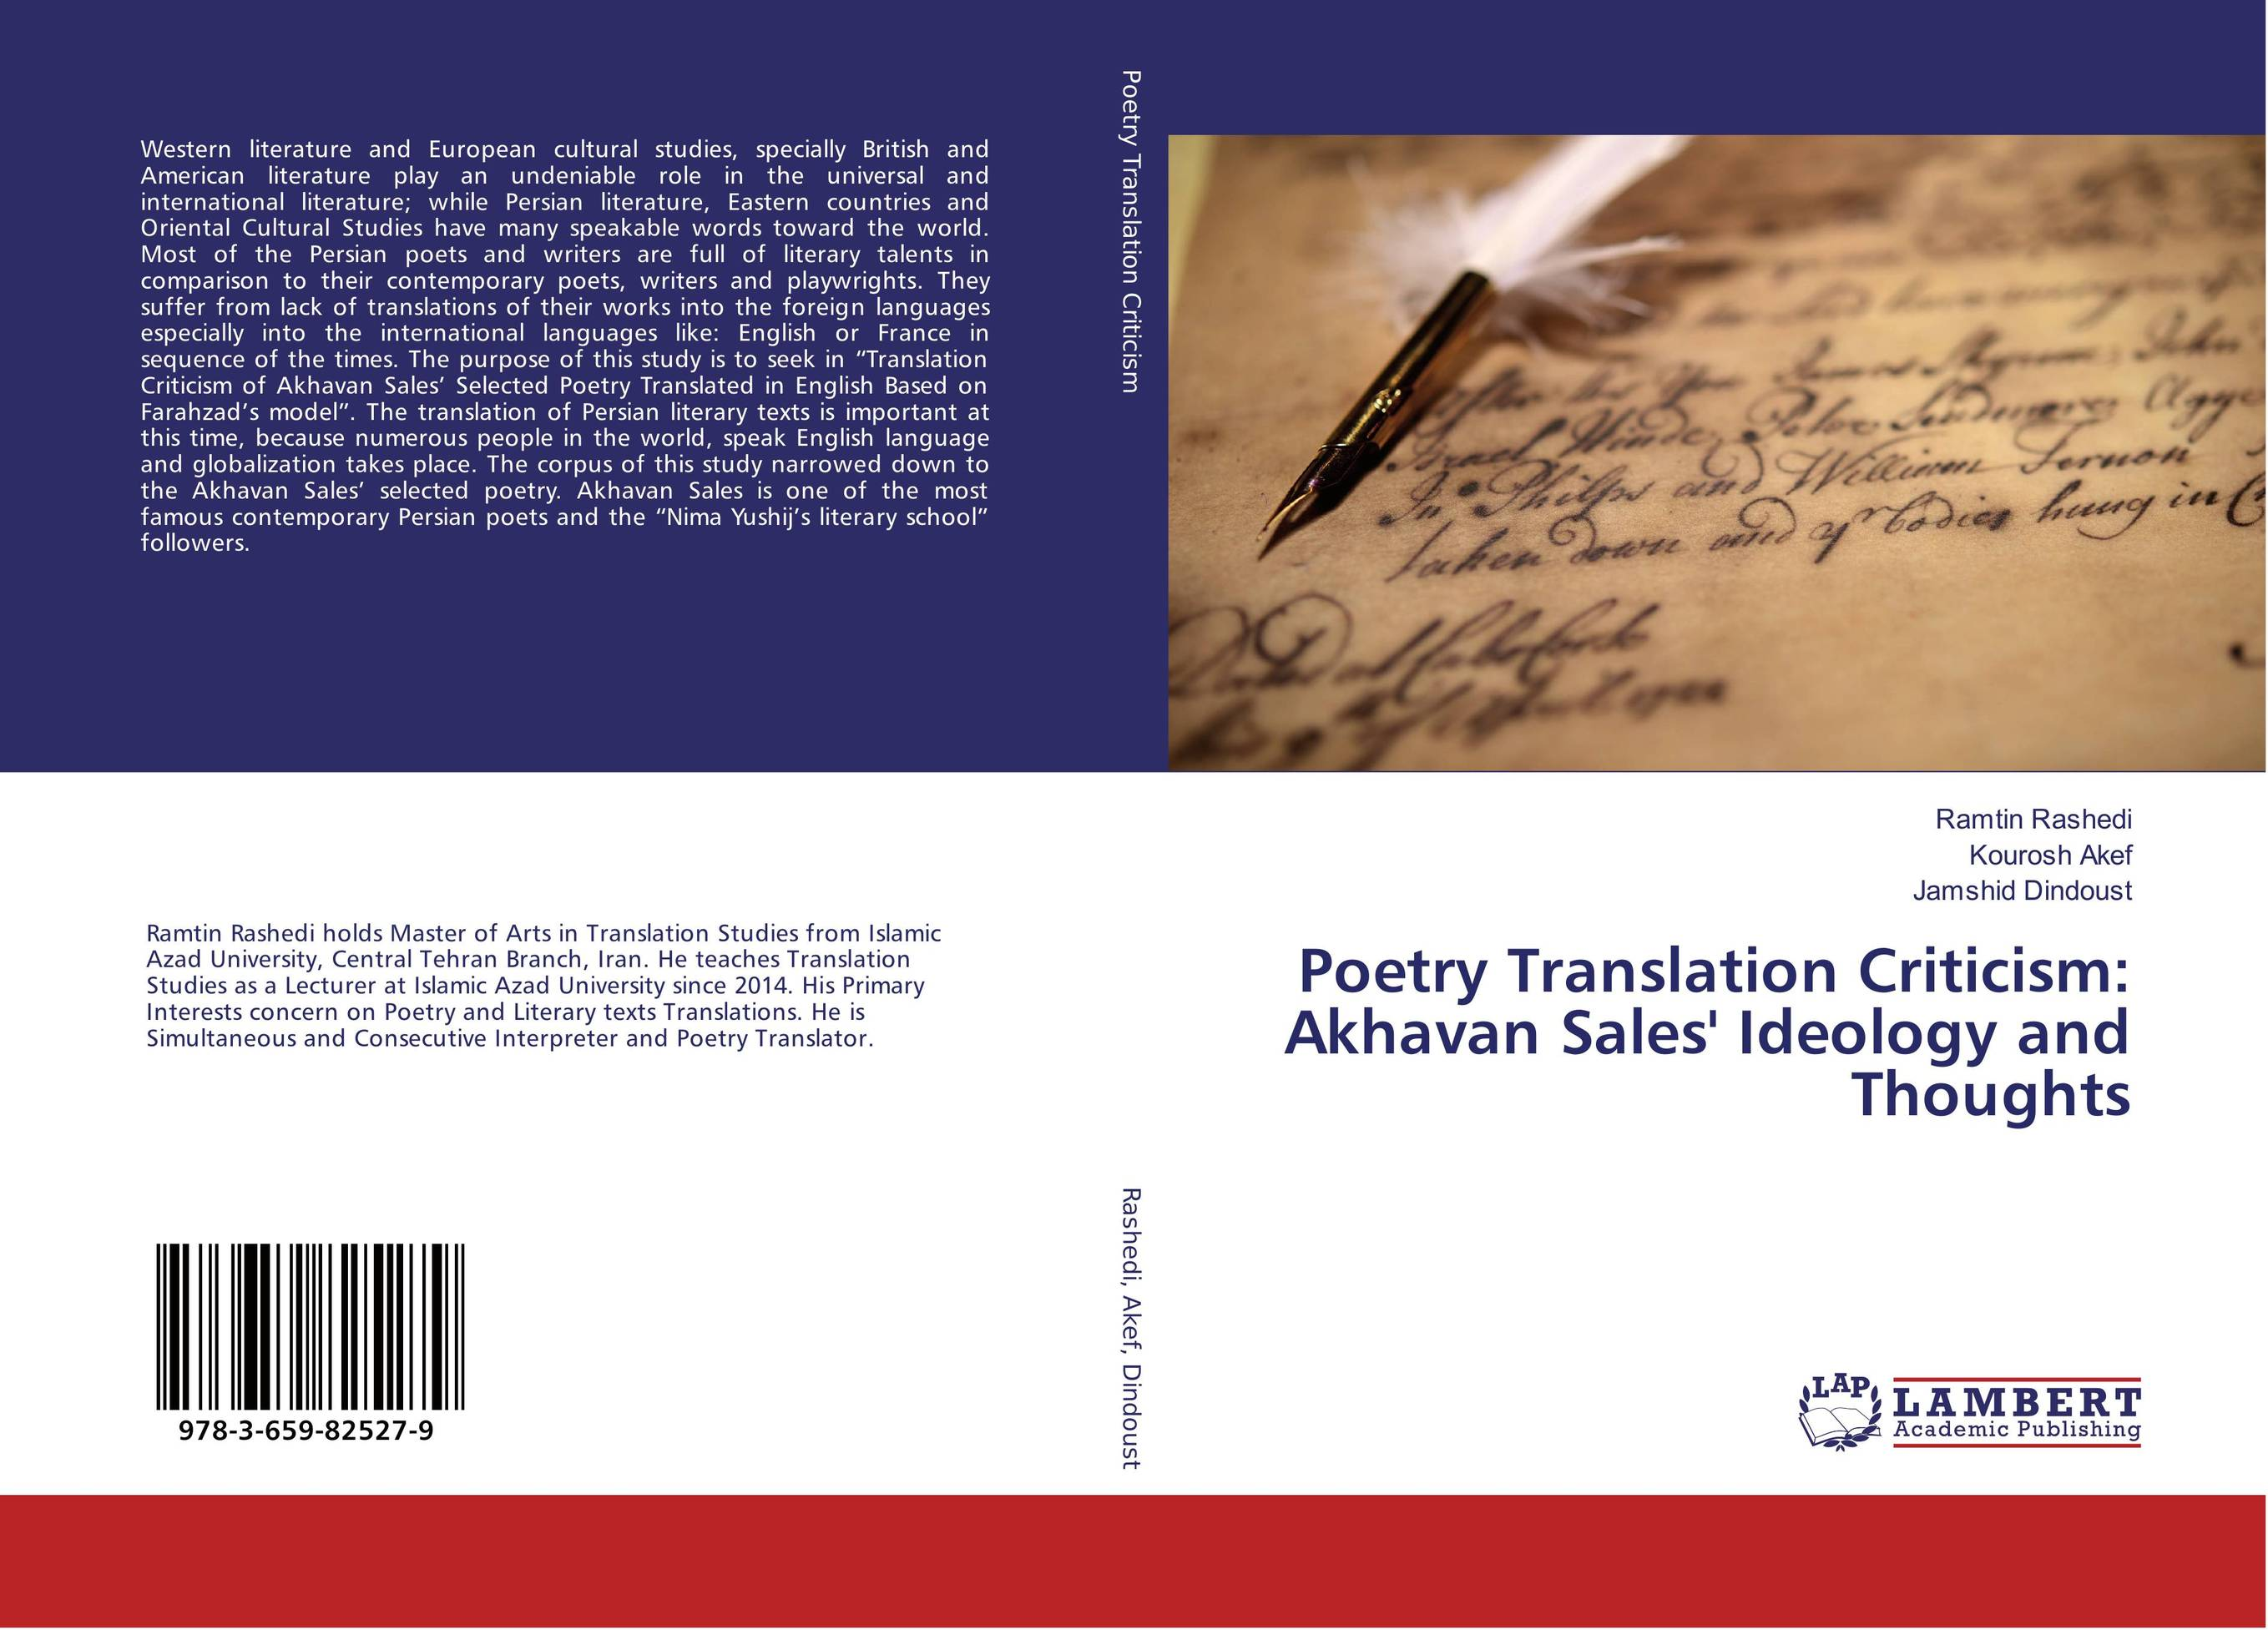 Poetry Translation Criticism: Akhavan Sales' Ideology and Thoughts persian art